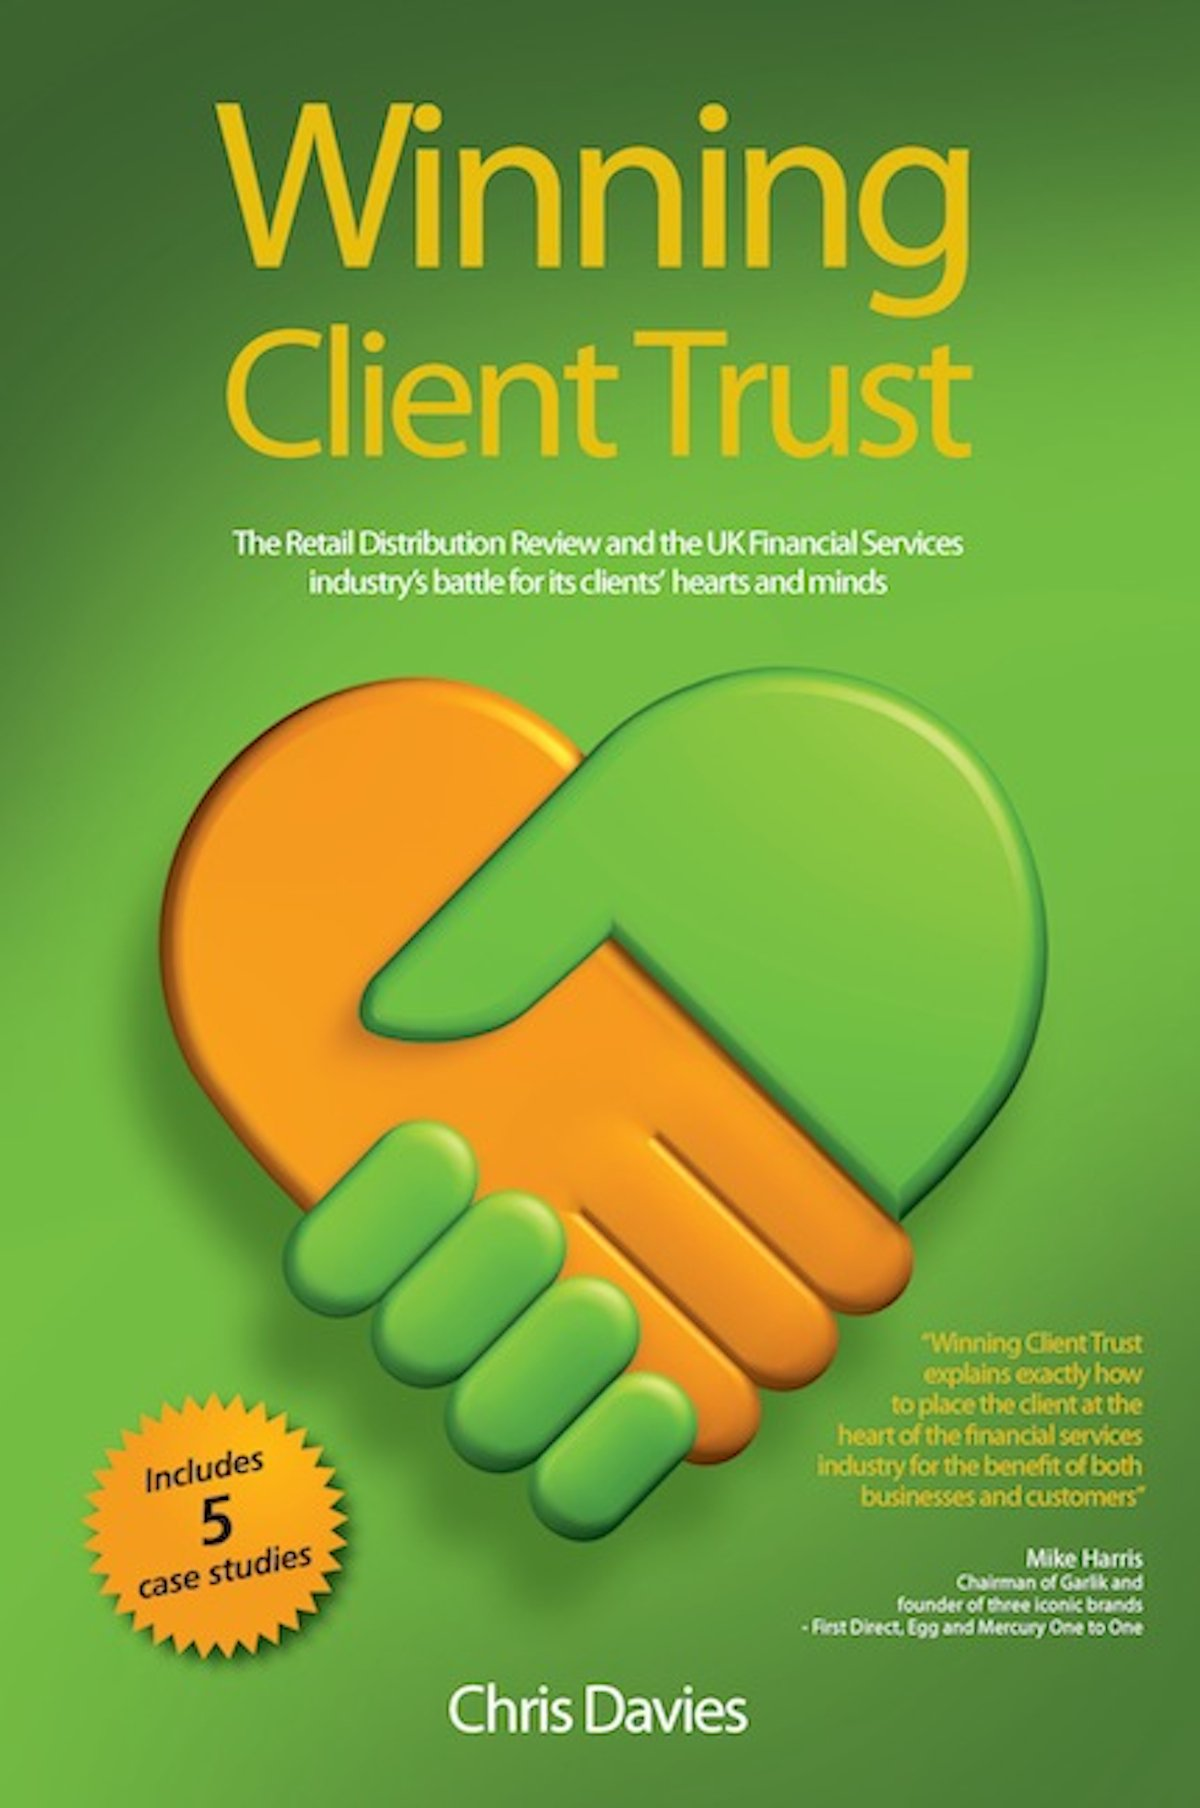 Download Winning Client Trust: The Retail Distribution Review and the UK Financial Services industry's battle for its clients' hearts and minds ebook